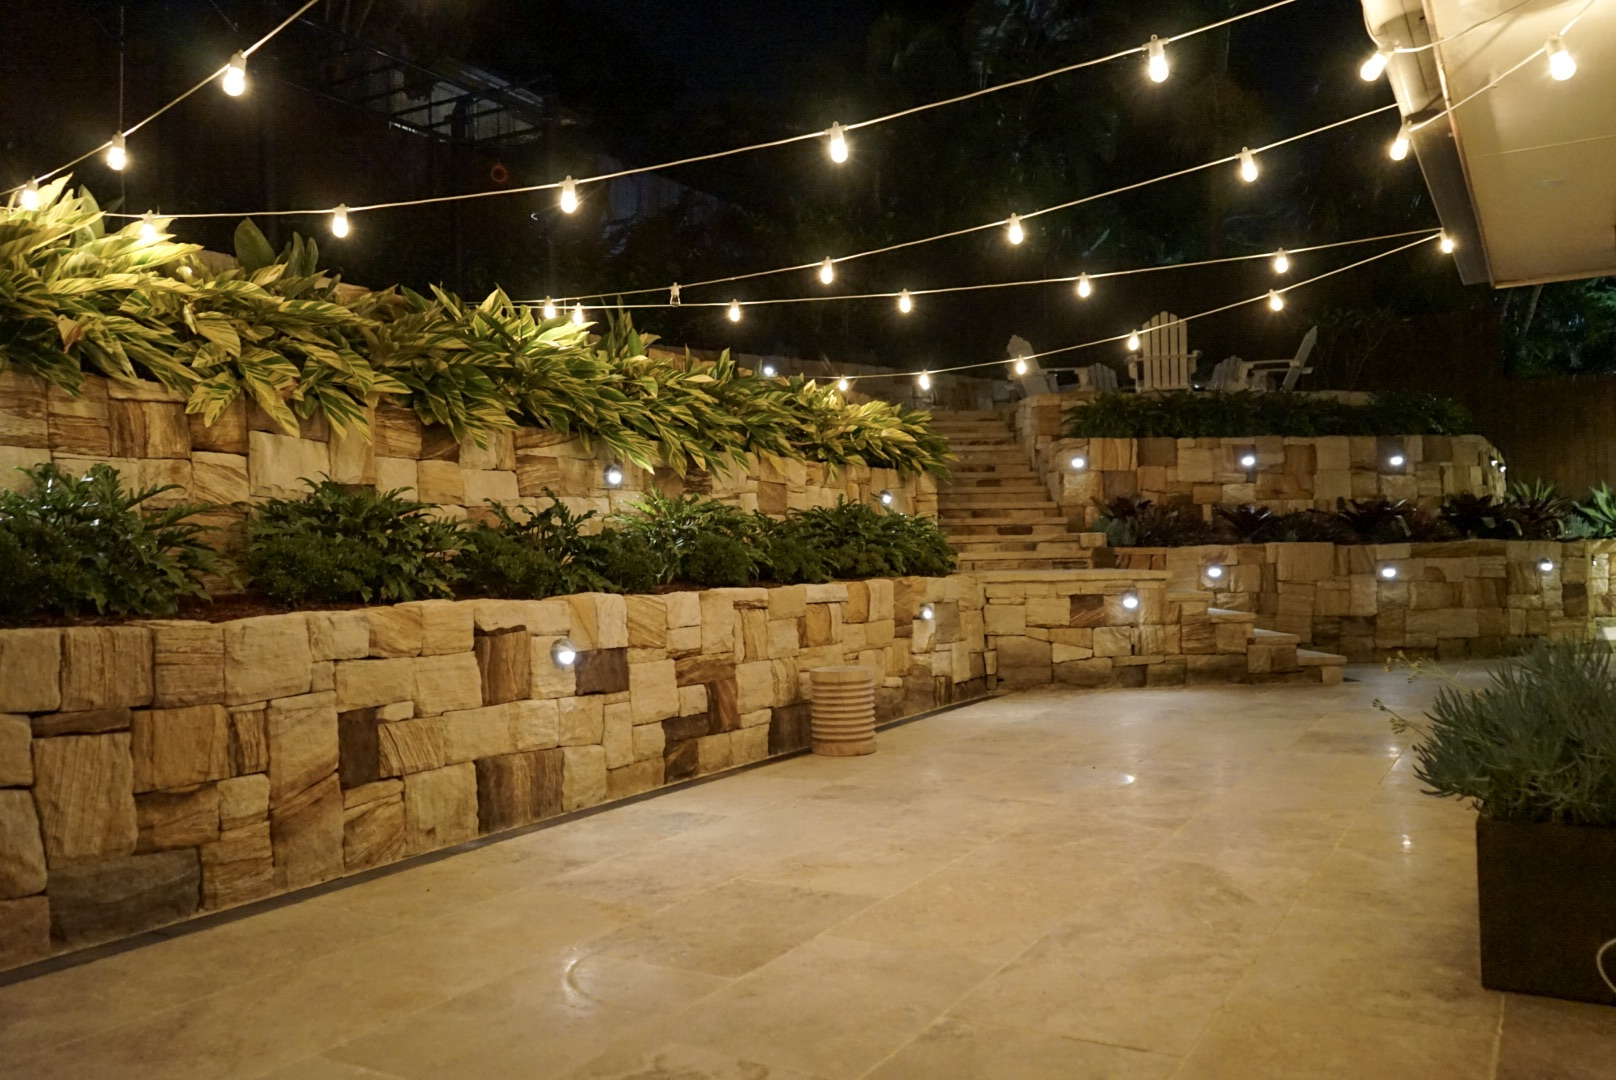 Travertine Pavers, Sandstone Walls